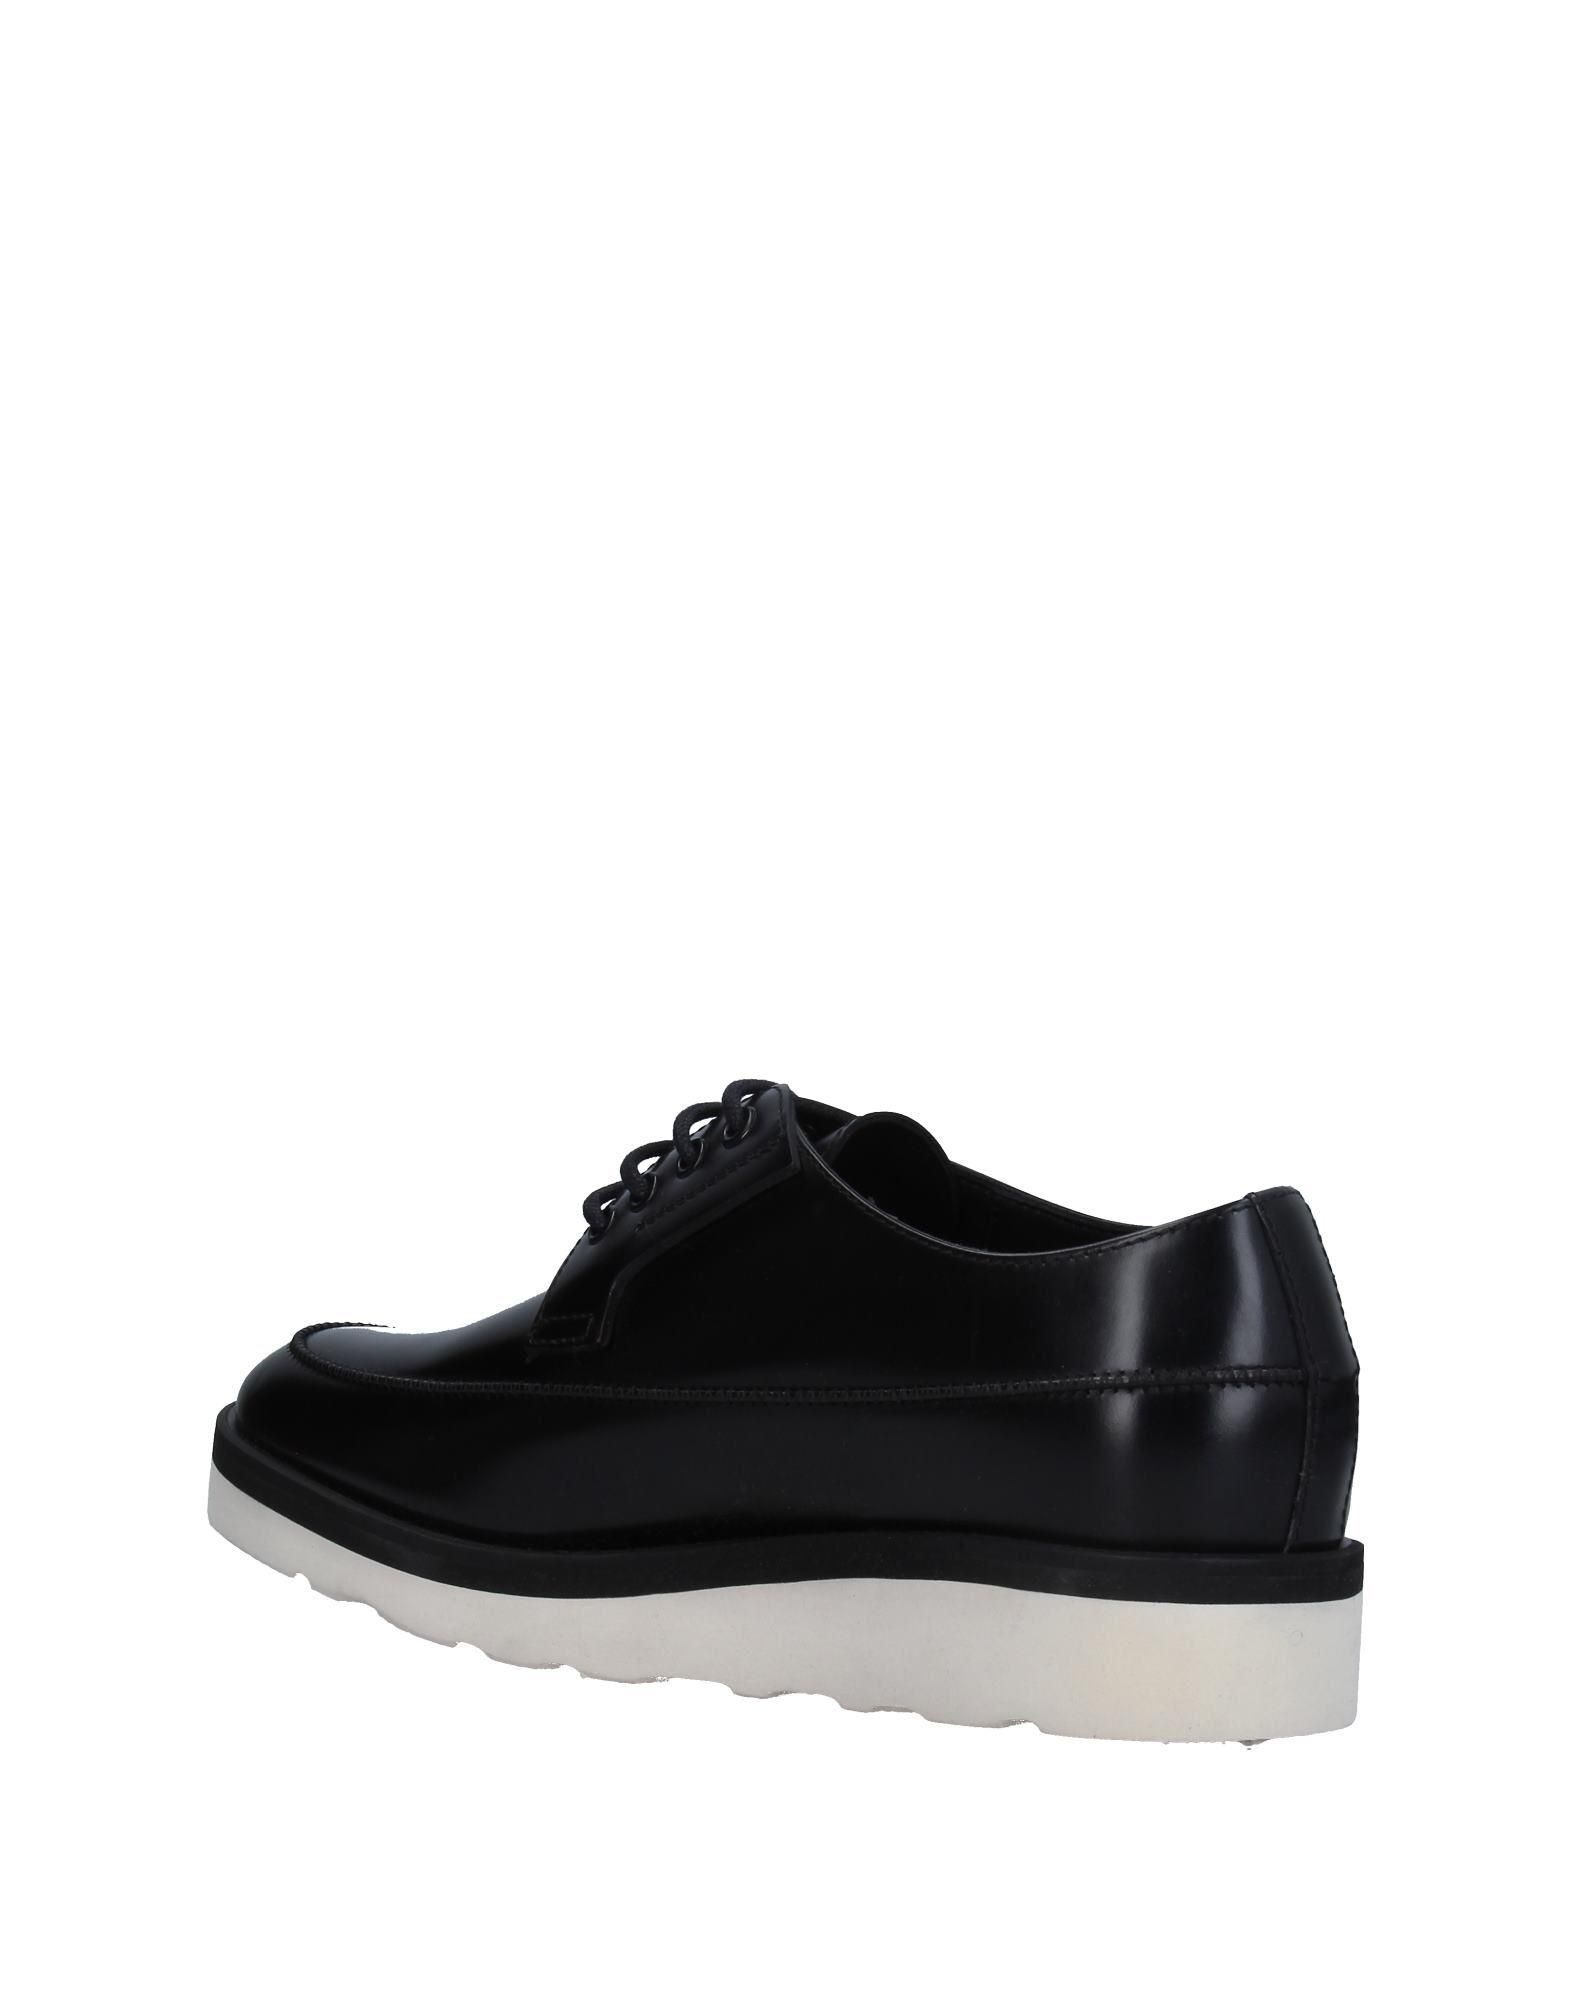 OAMC Leather Lace-up Shoe in Black for Men